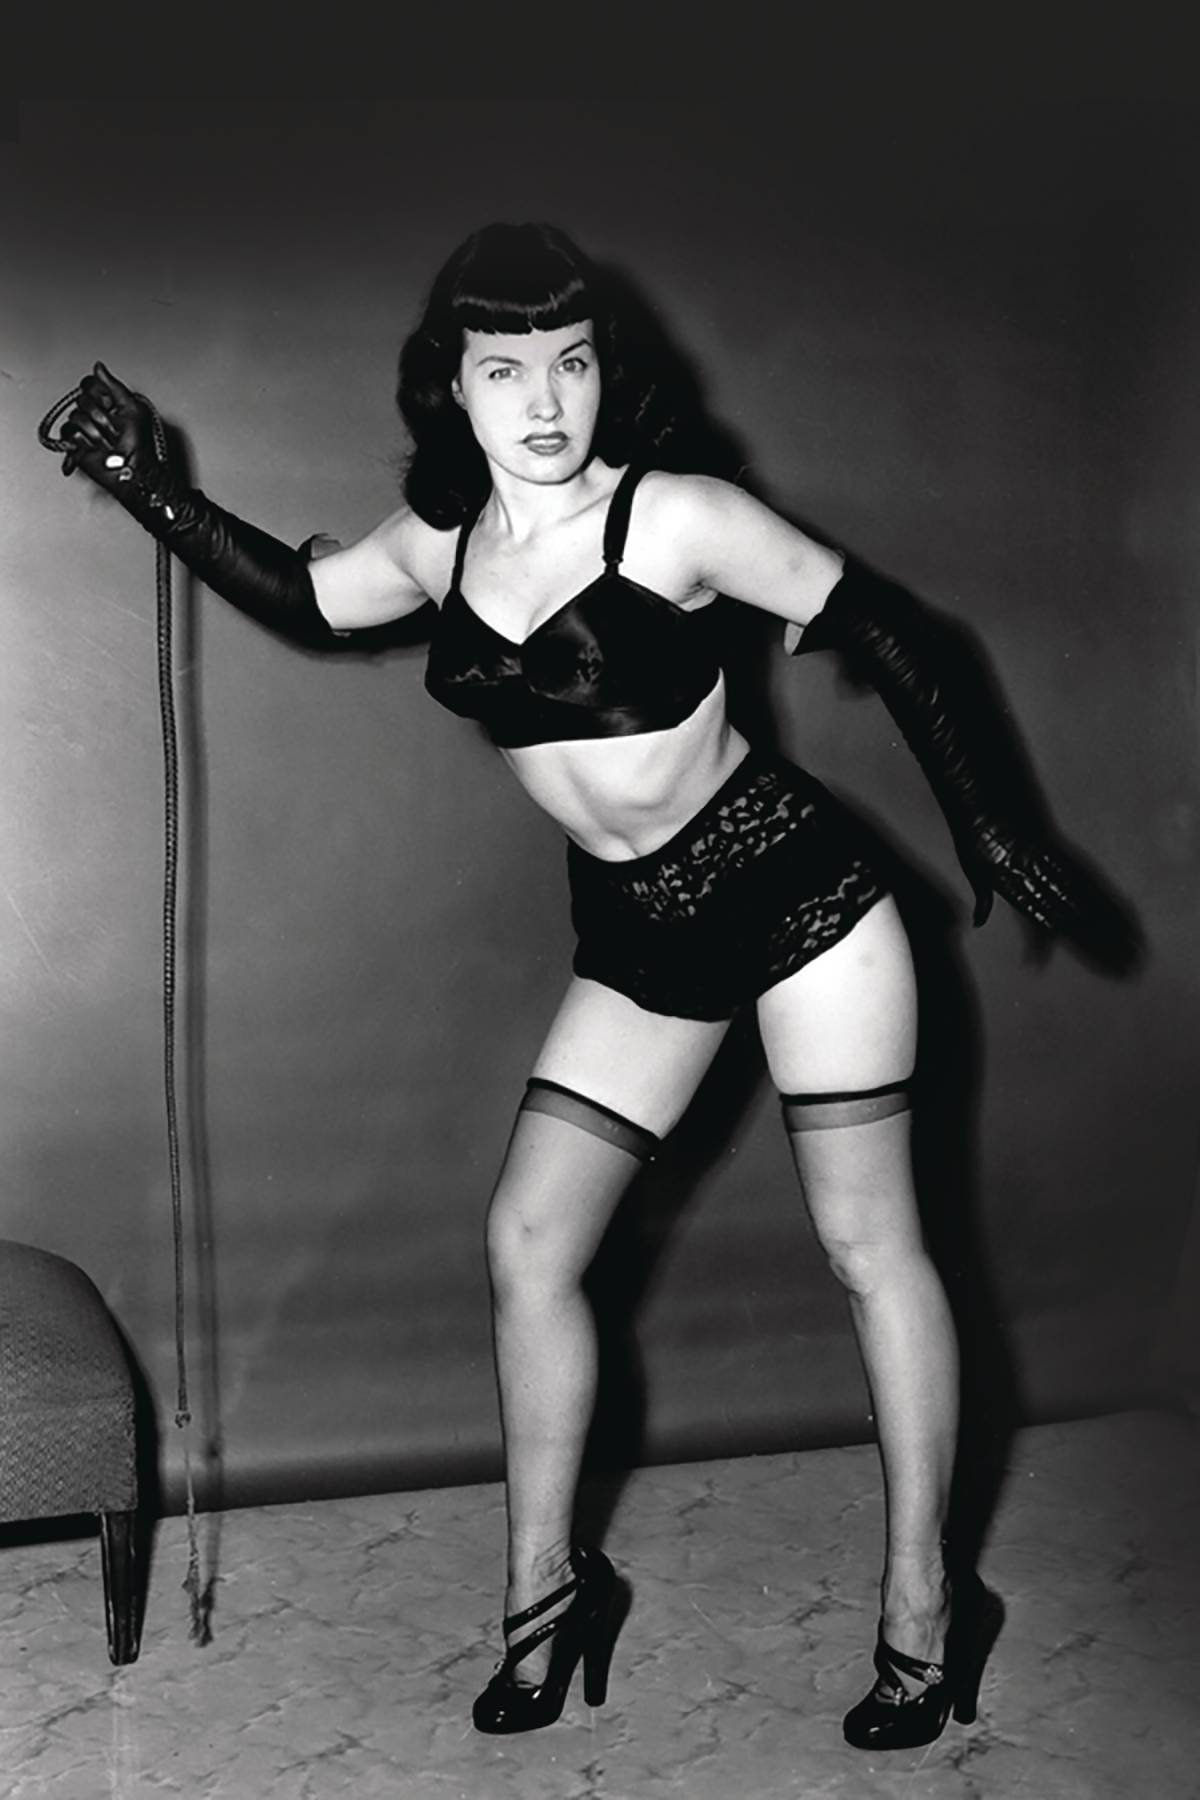 BETTIE PAGE 4 10 COPY PHOTO VIRGIN INCV.jpg